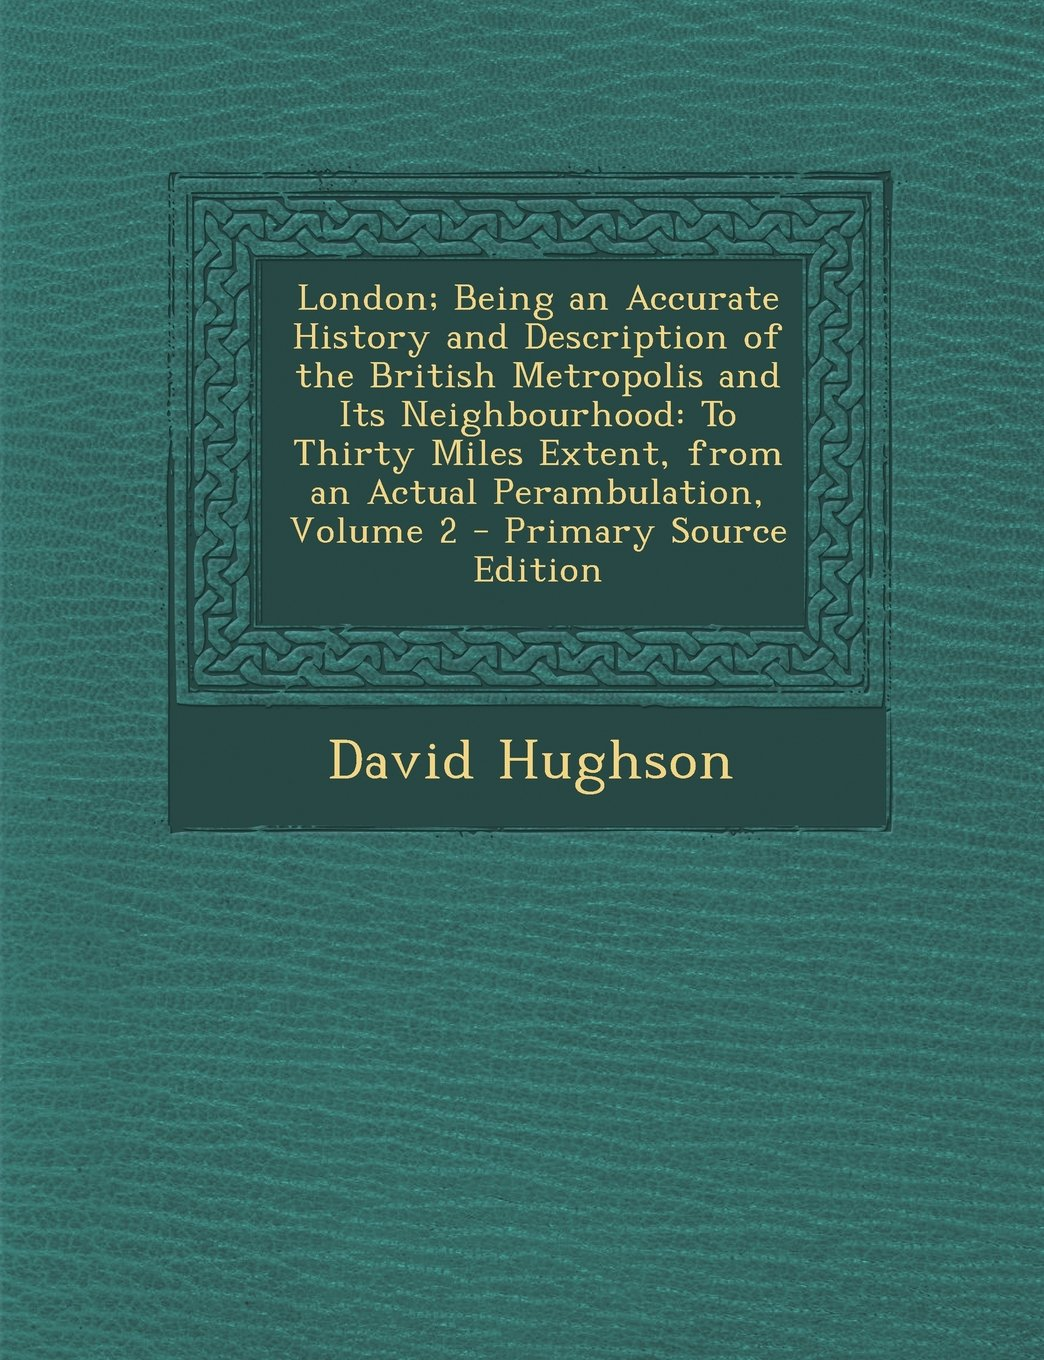 Download London; Being an Accurate History and Description of the British Metropolis and Its Neighbourhood: To Thirty Miles Extent, from an Actual Perambulation, Volume 2 ebook